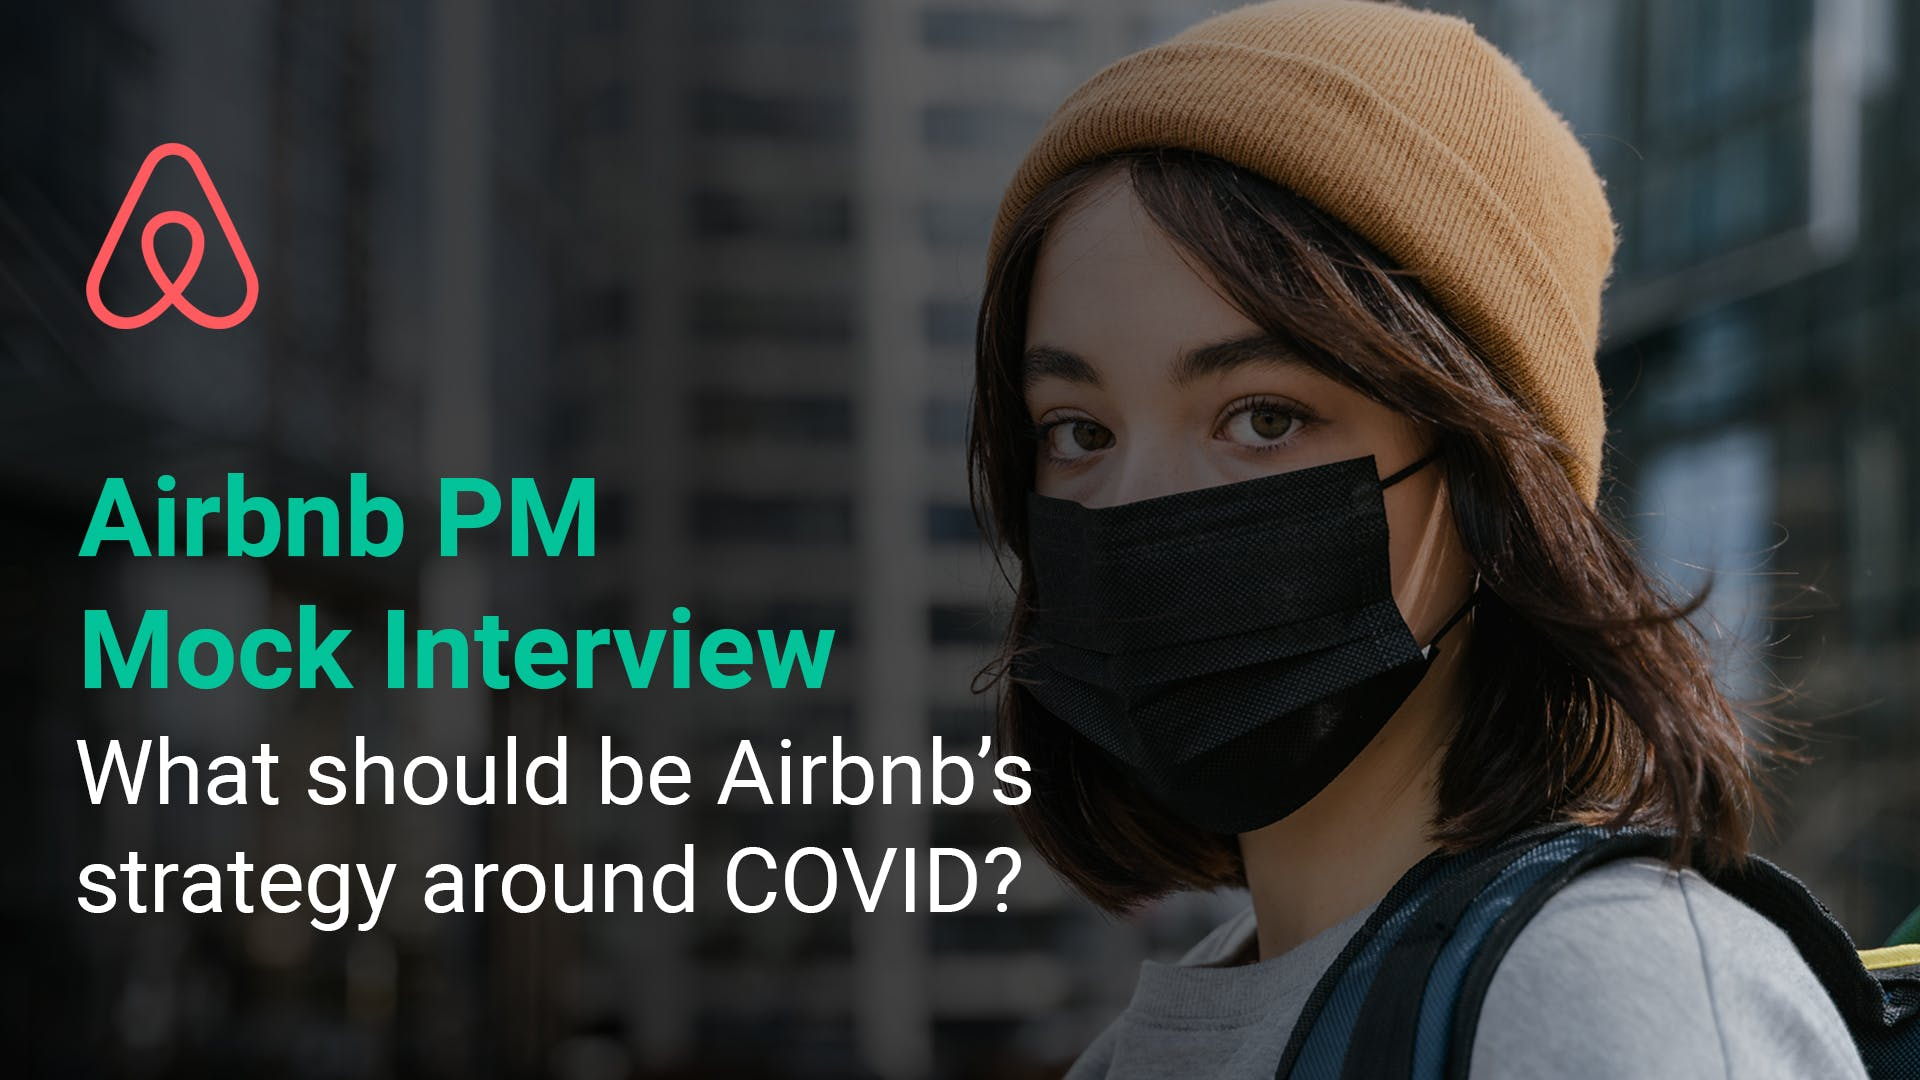 airbnb-pm-what-should-be-airbnb's-strategy-around-COVID